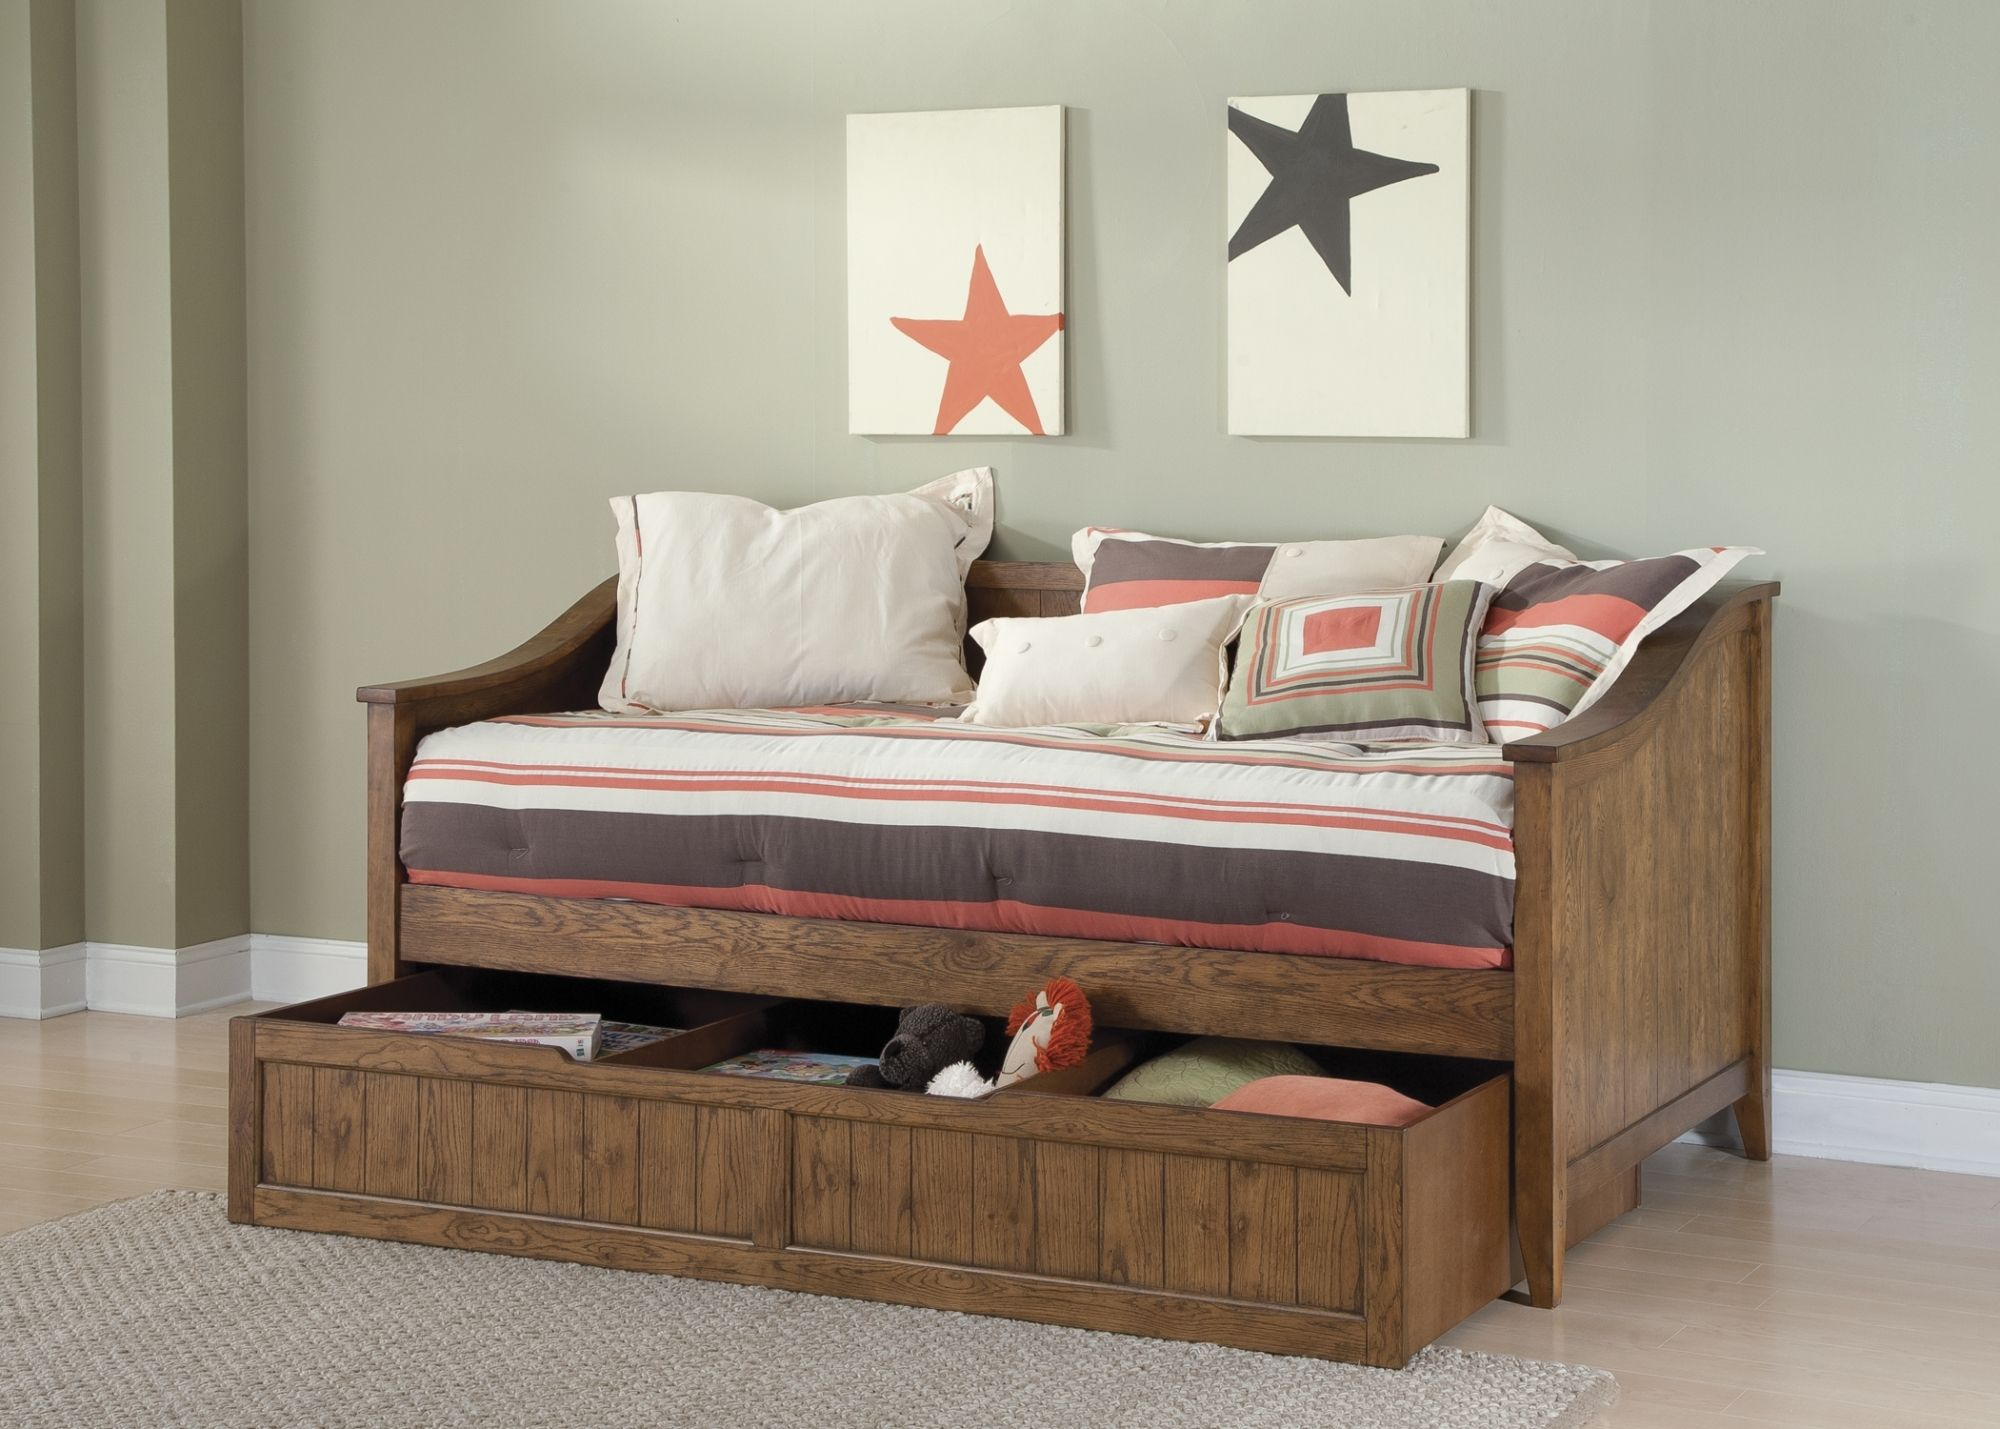 Day Beds For Sale Wooden Daybeds With Drawers Http Ezserver Us Pinterest